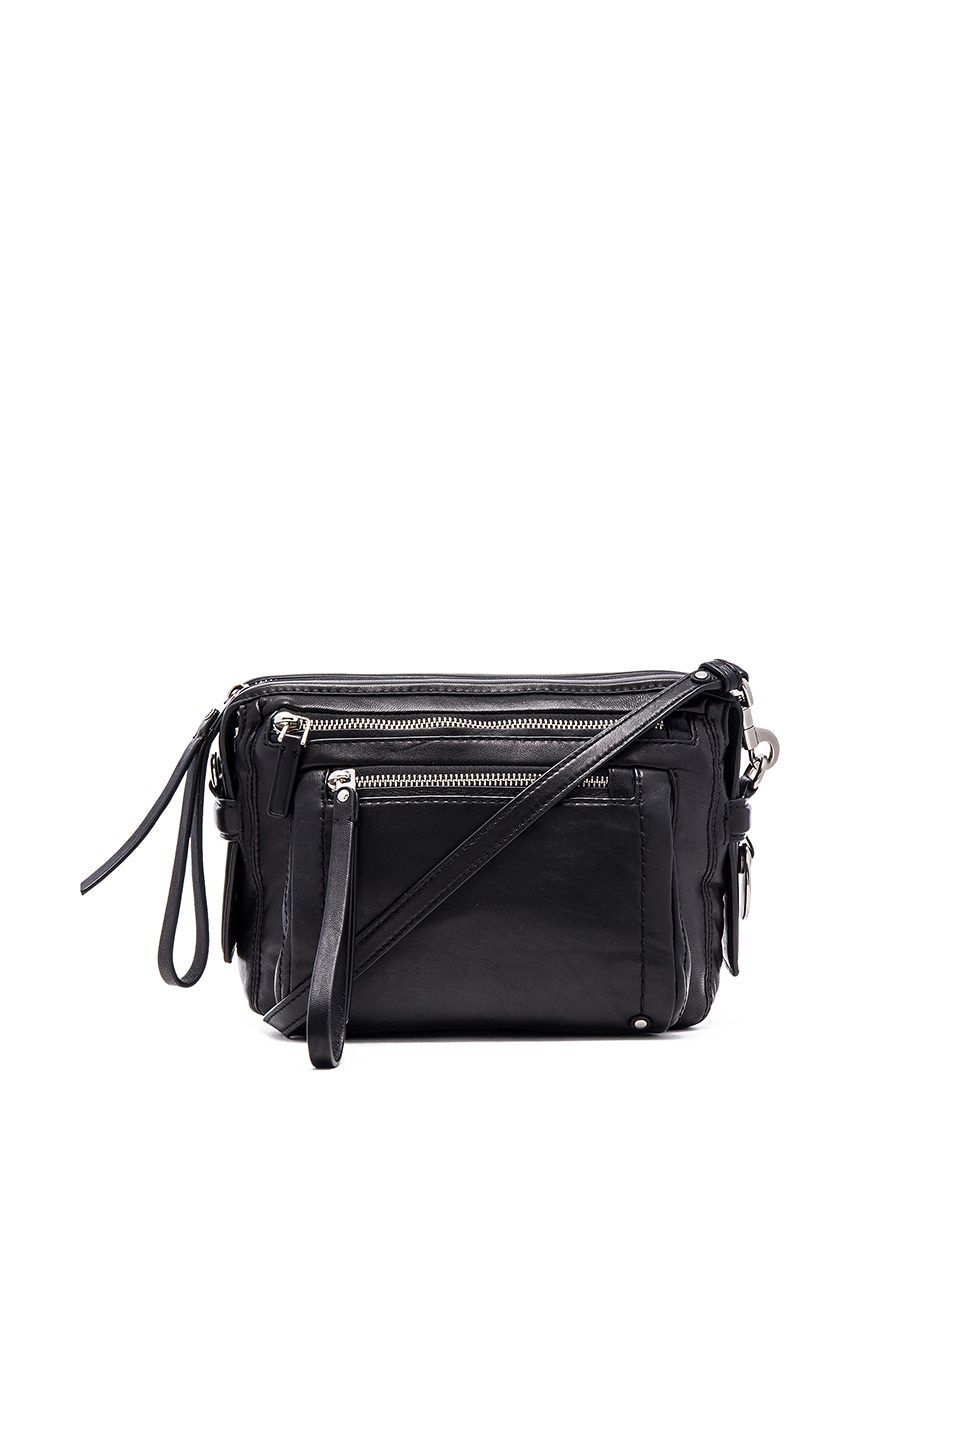 Marc by Marc Jacobs Cube Messenger Bag in Black